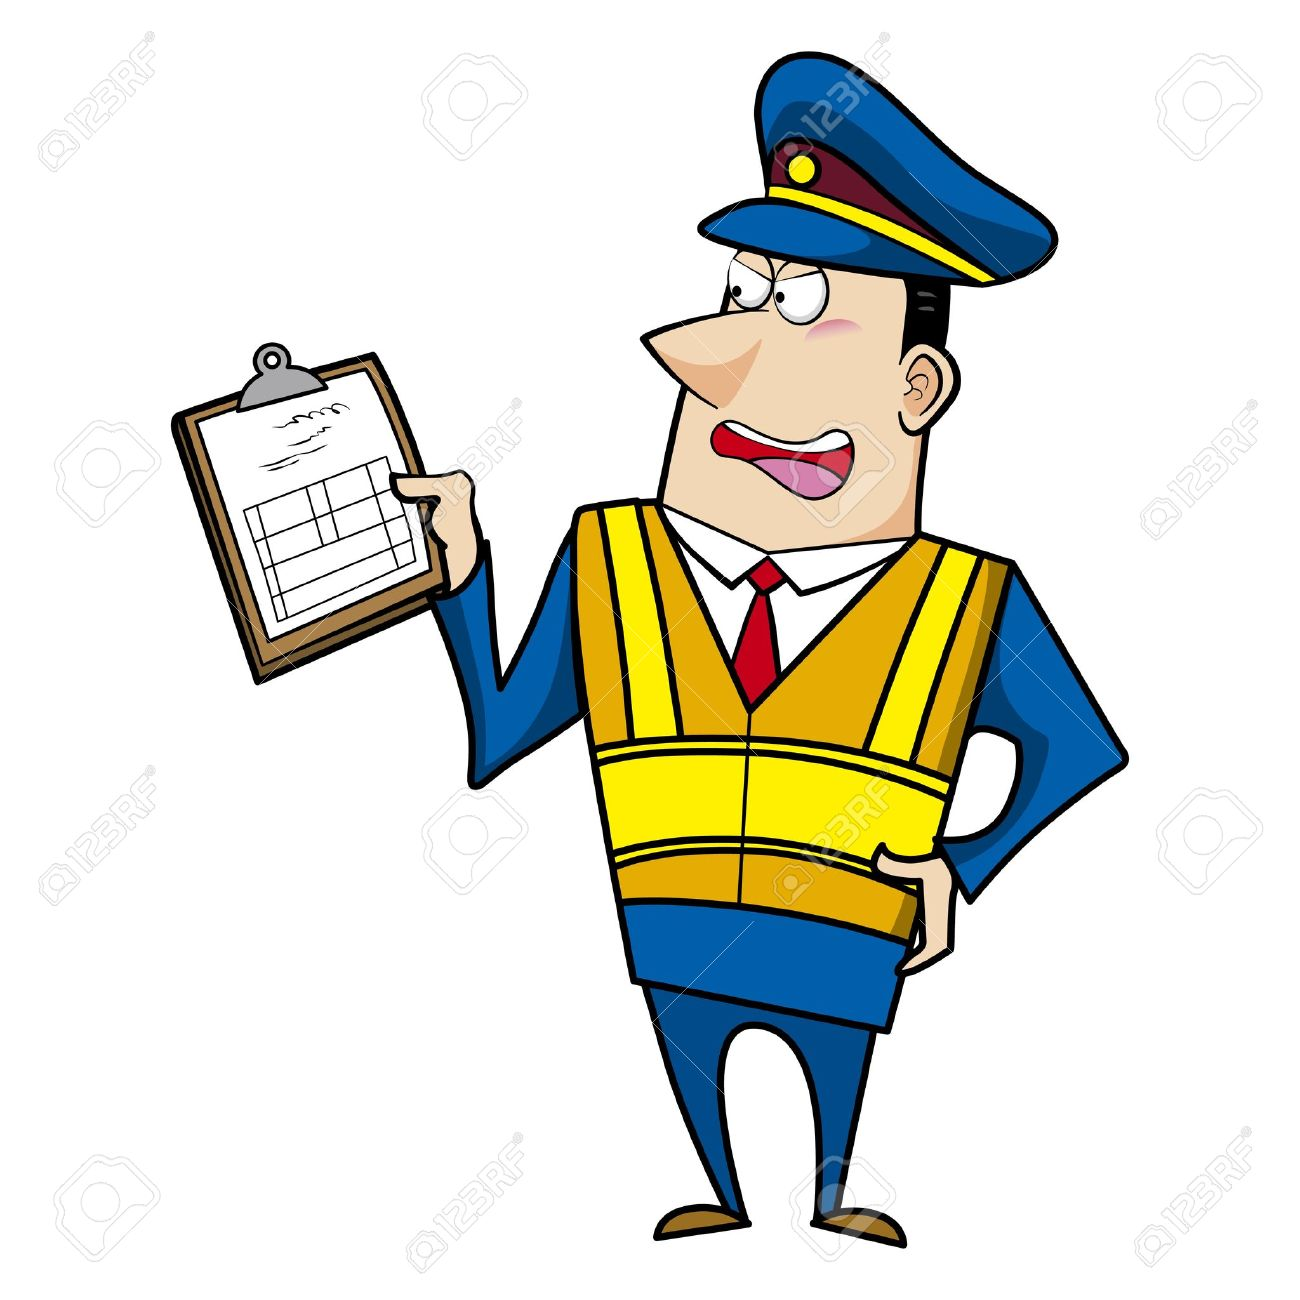 Male Cartoon Police Officer Holding A Ticket Royalty Free Cliparts ...